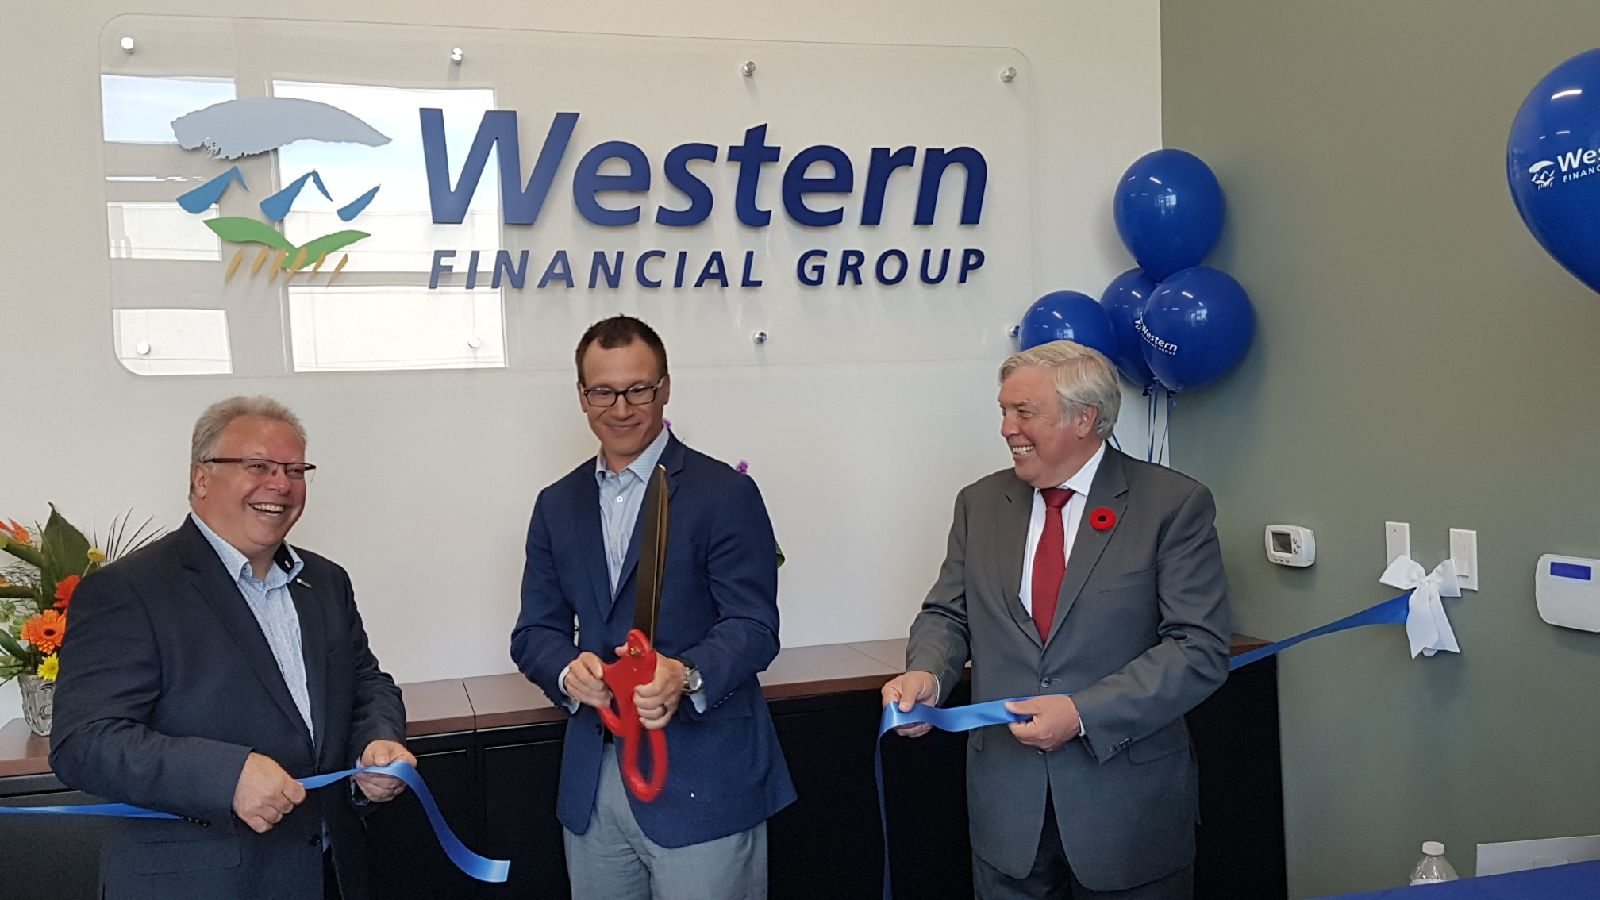 Western inaugurates new insurance brokerage office in Lethbridge, Canada